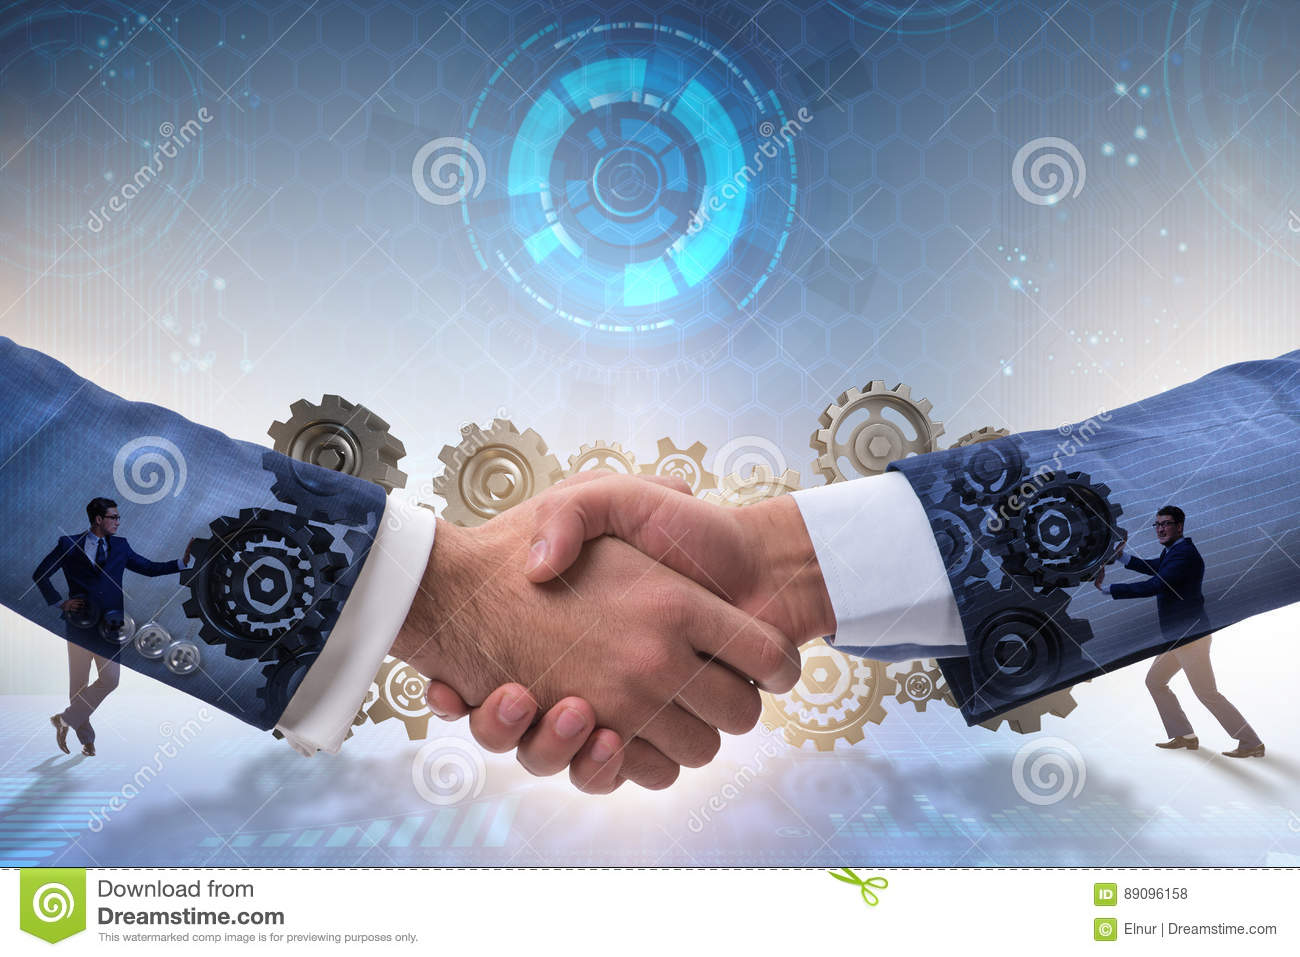 The handshake concept - business metaphor illustration